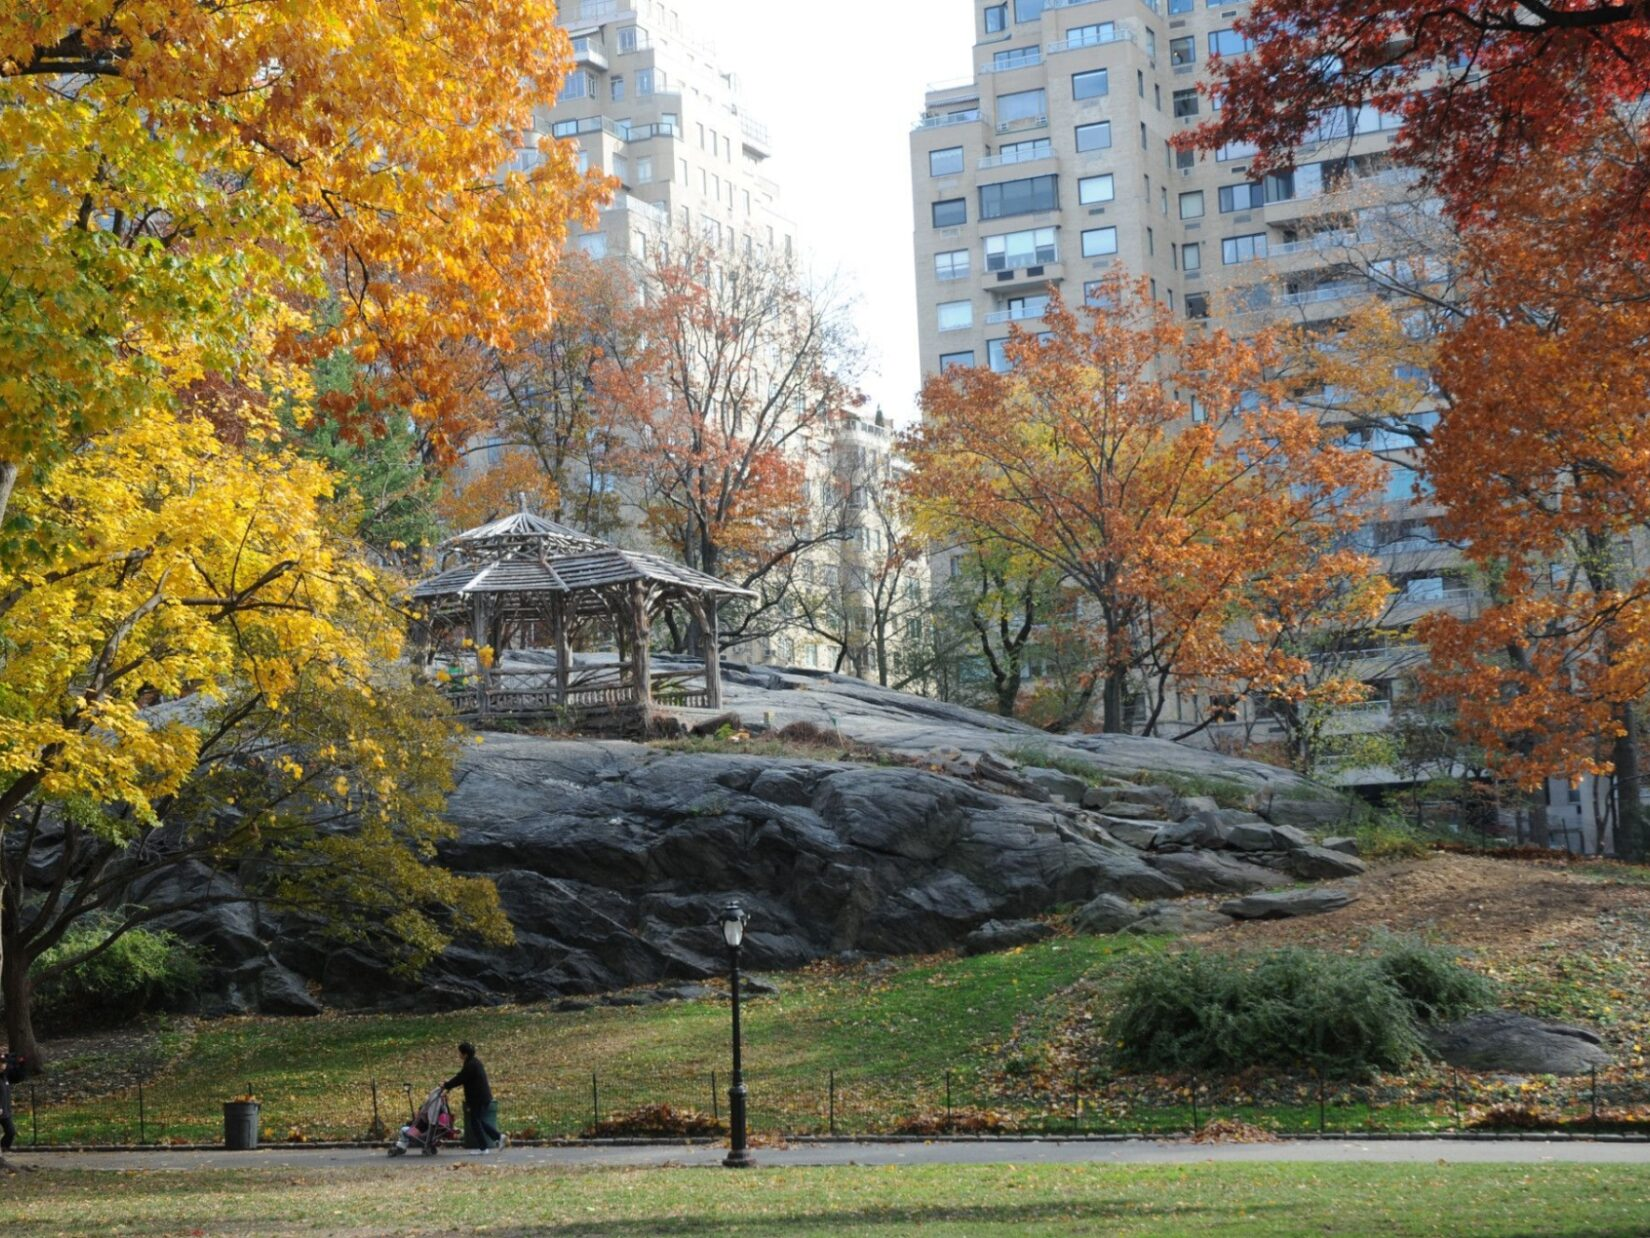 A rustic structure perches atop a large schist outcropping surrounded by fall trees